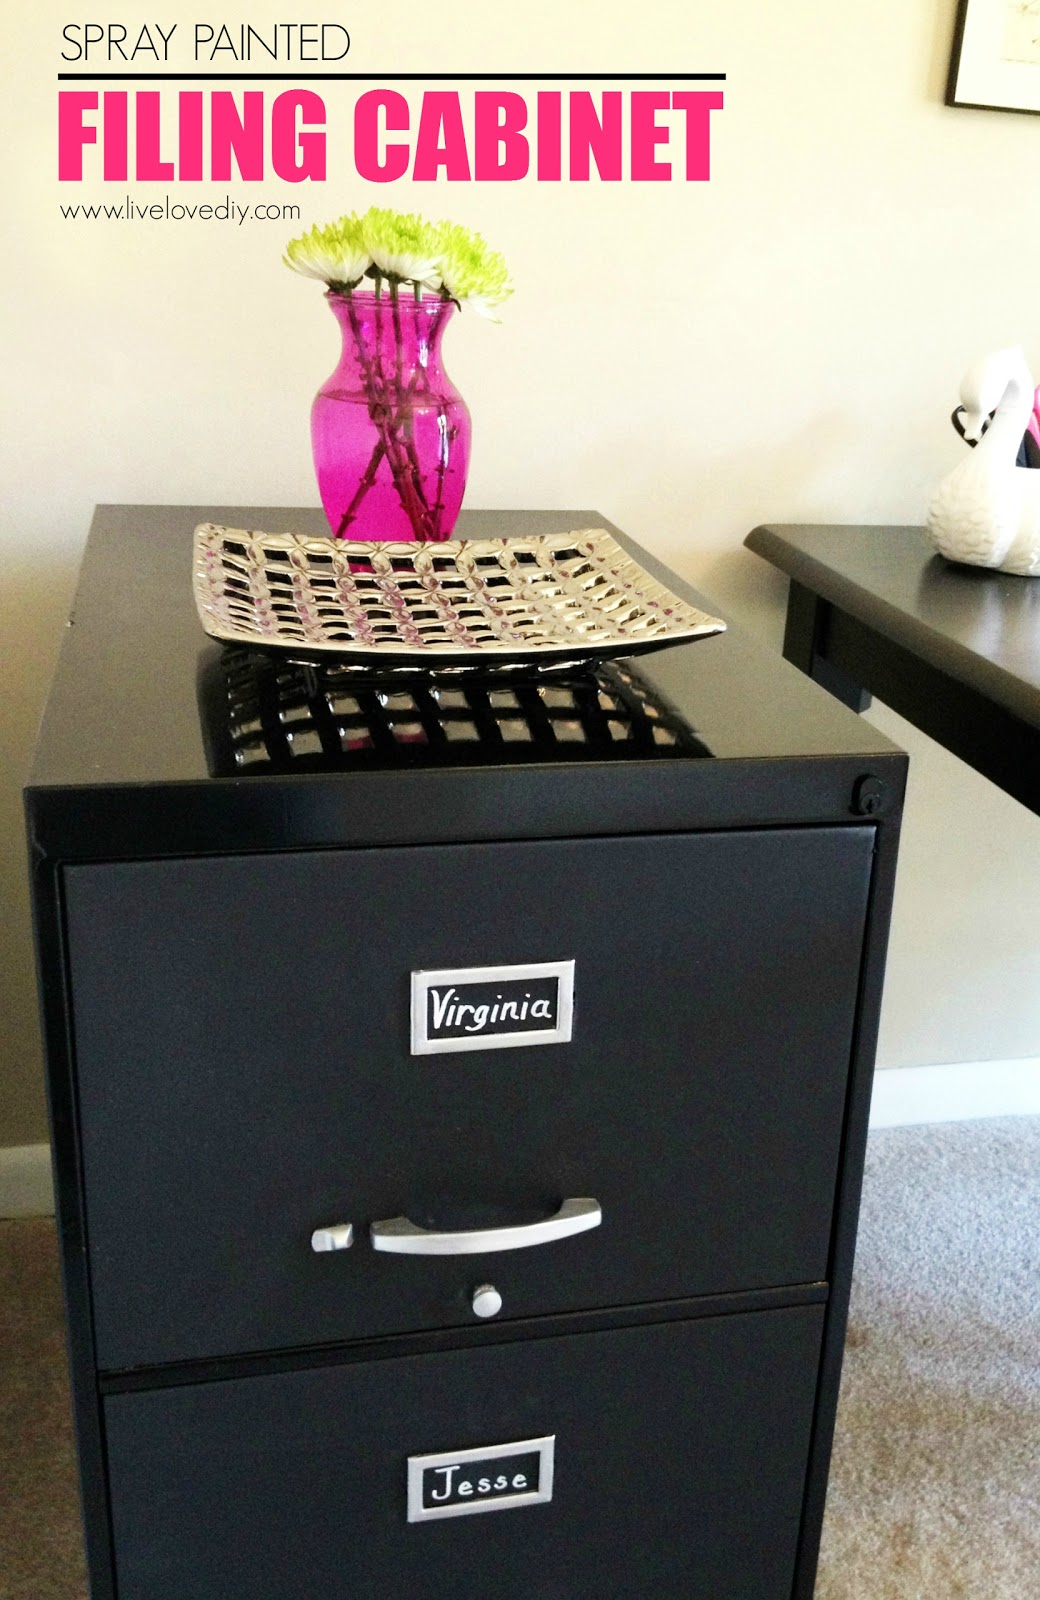 Charmant Another Example Is This Filing Cabinet. I Spray Painted The Frame A High  Gloss Black And Then Used Chalkboard Paint On Each Drawer Front.